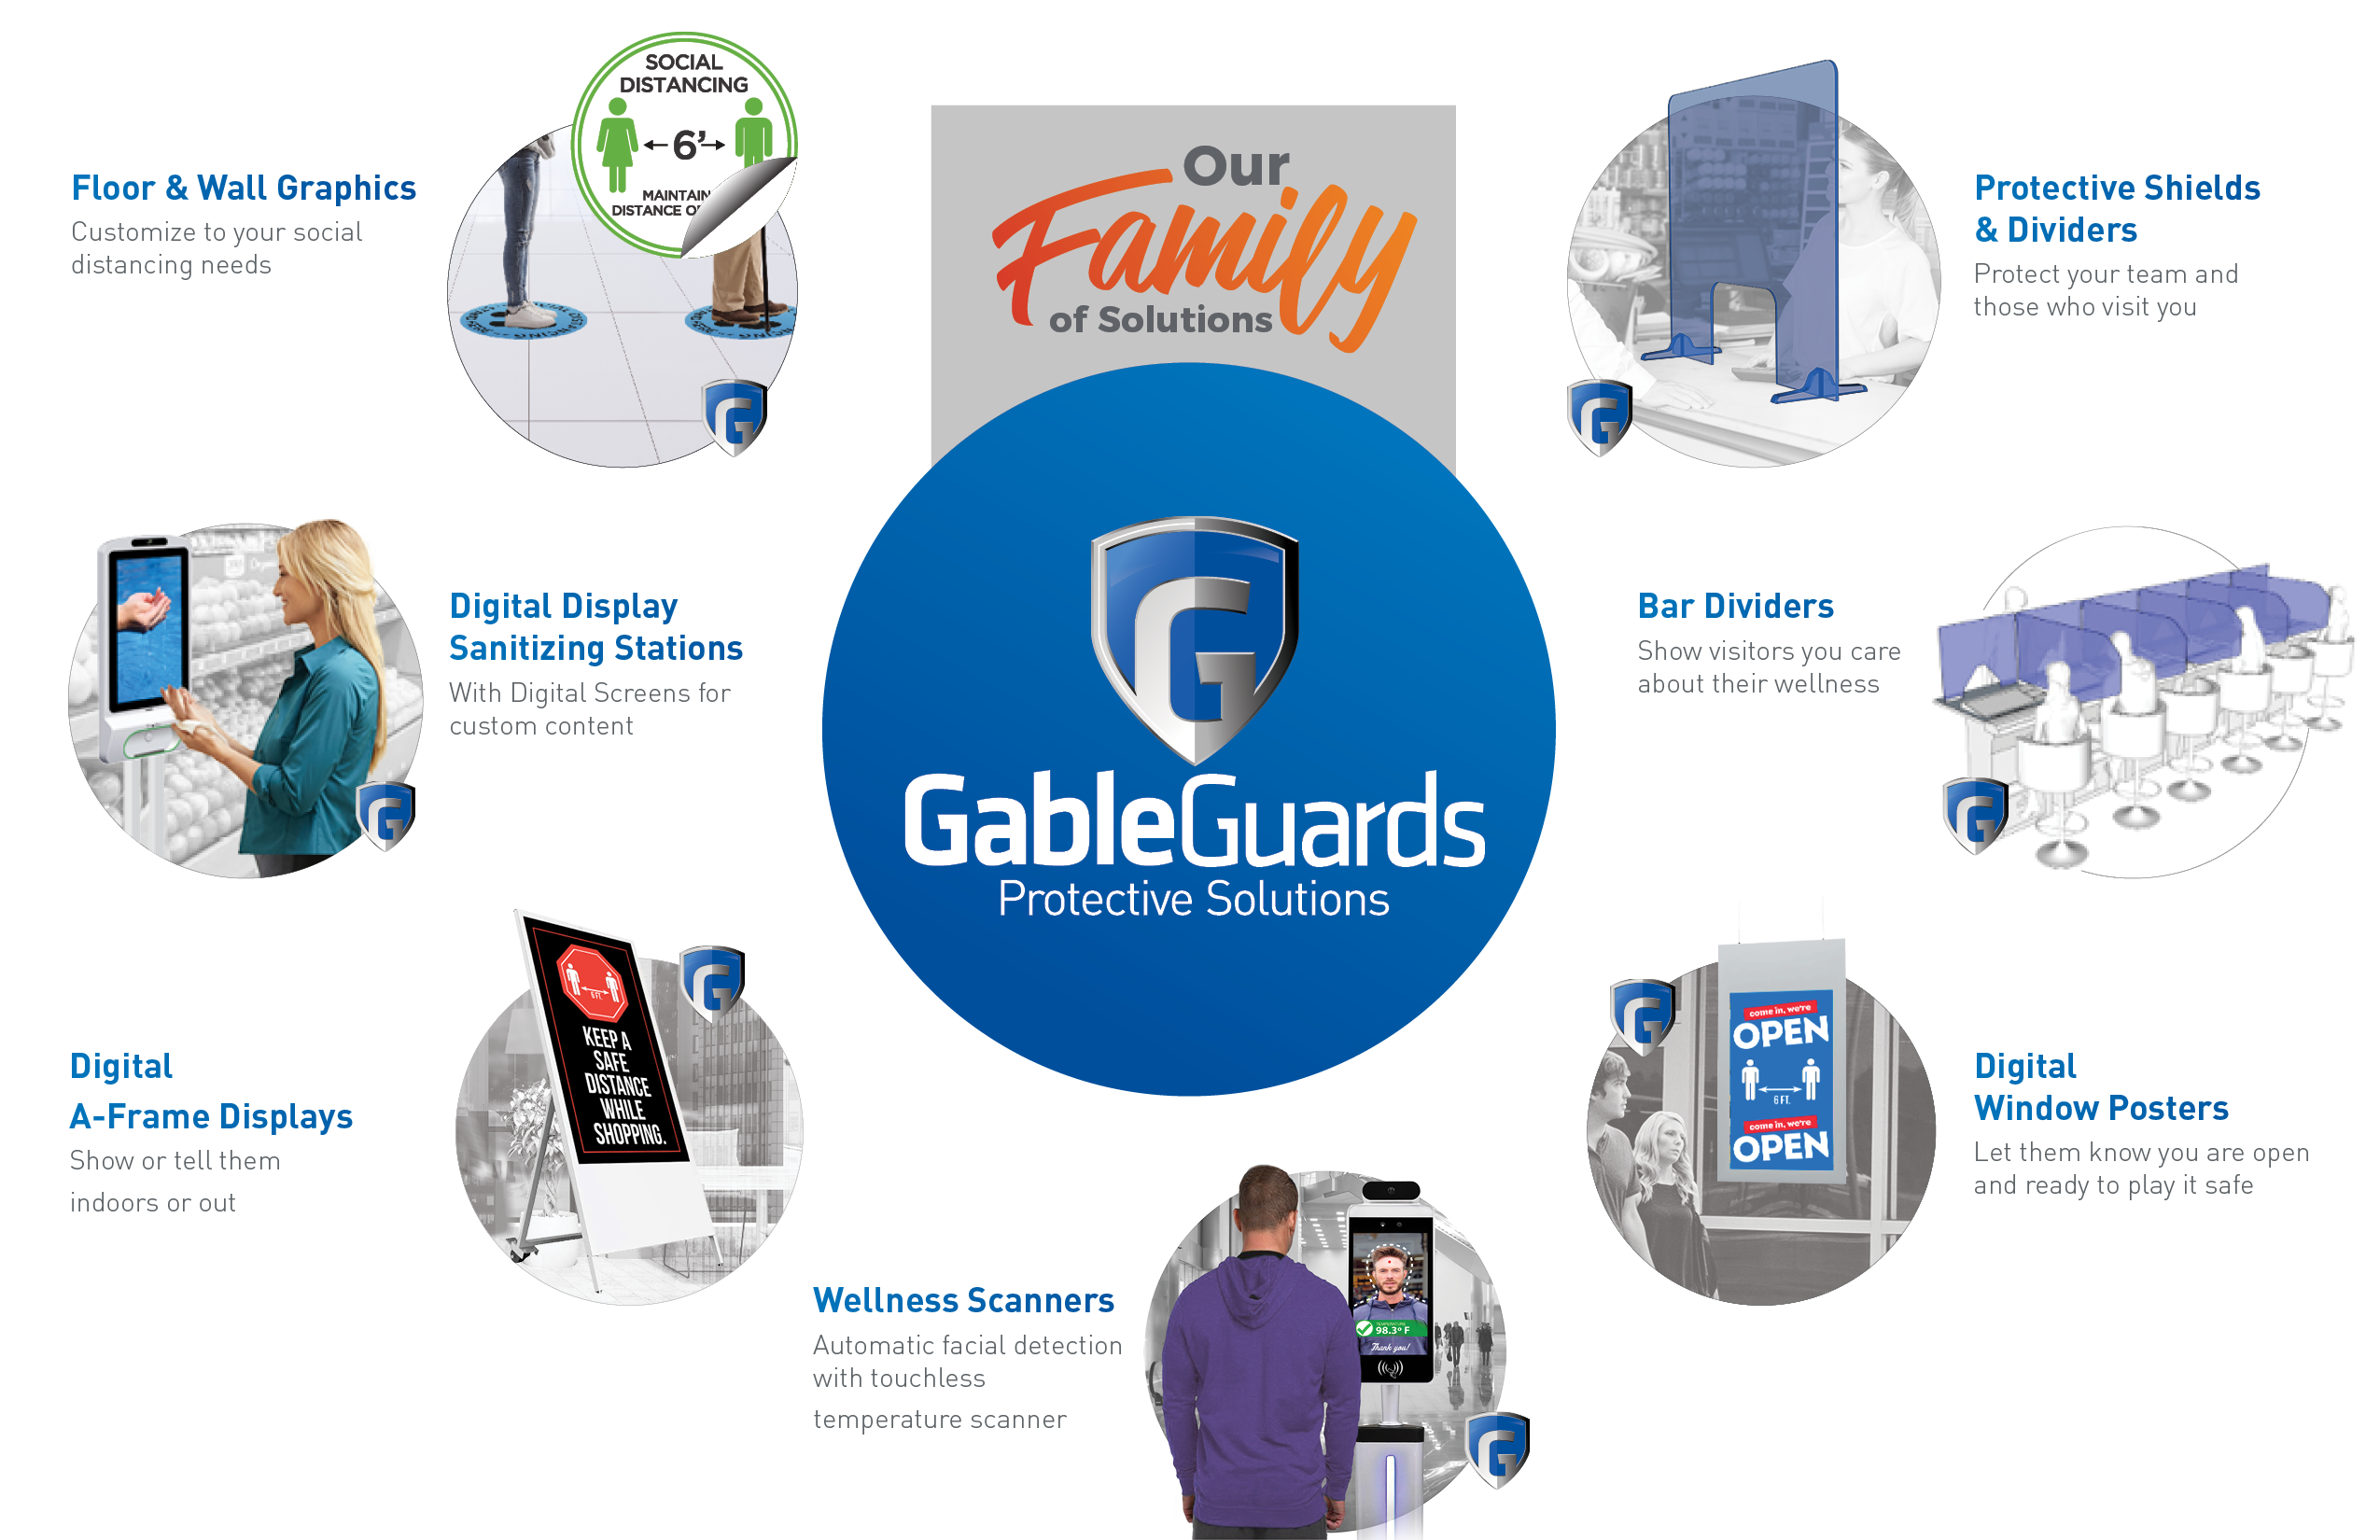 gableguards, ppe, protective solutions, safety, health safety, public health, corona shield, corona virus protection, covid19 safety